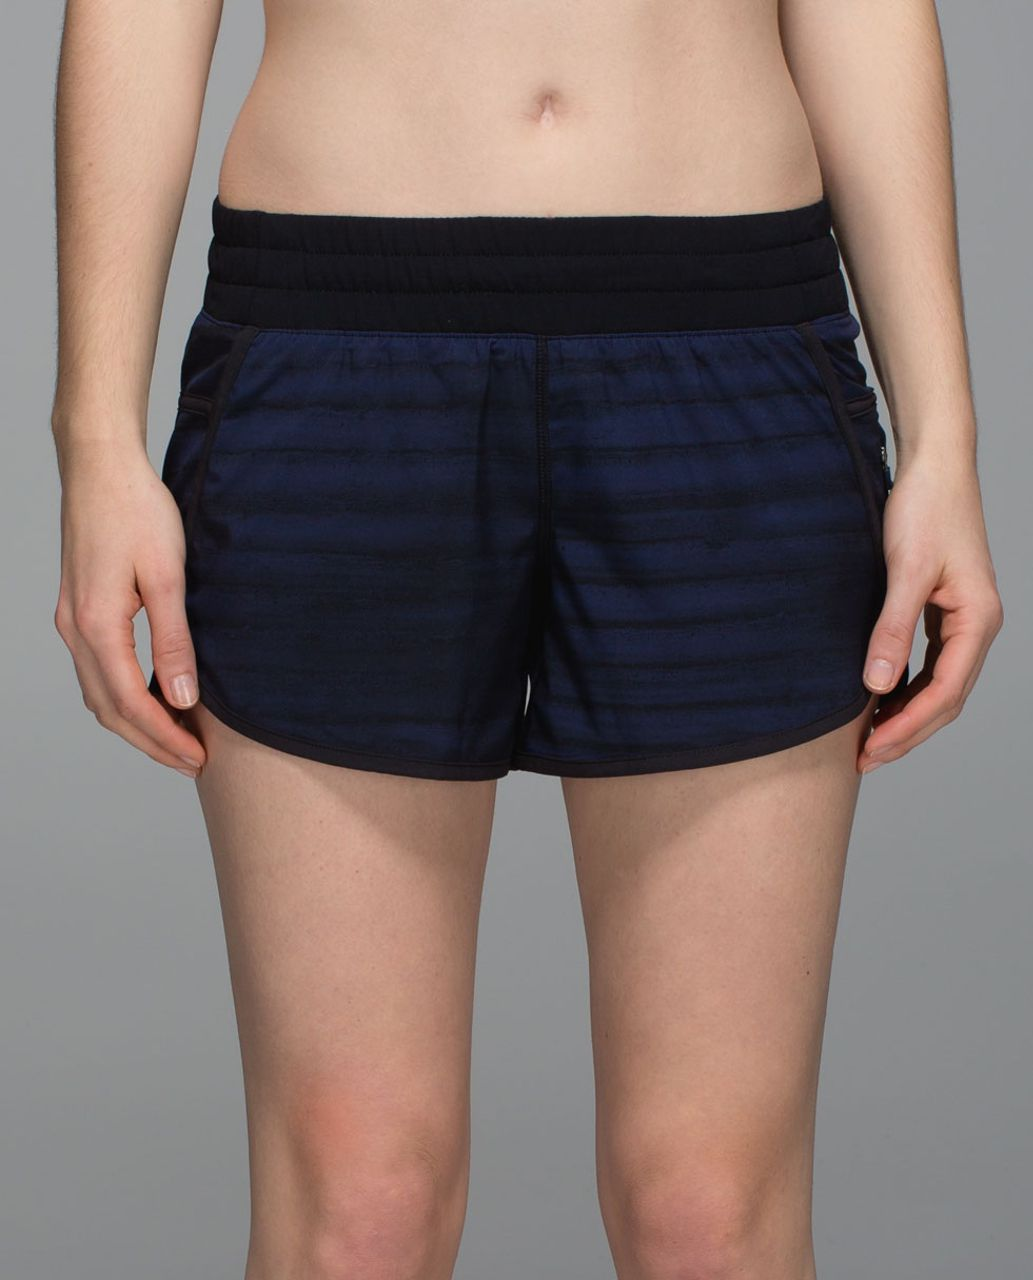 Lululemon Tracker Short III *4-way Stretch - Good Vibes Deep Navy Black / Black